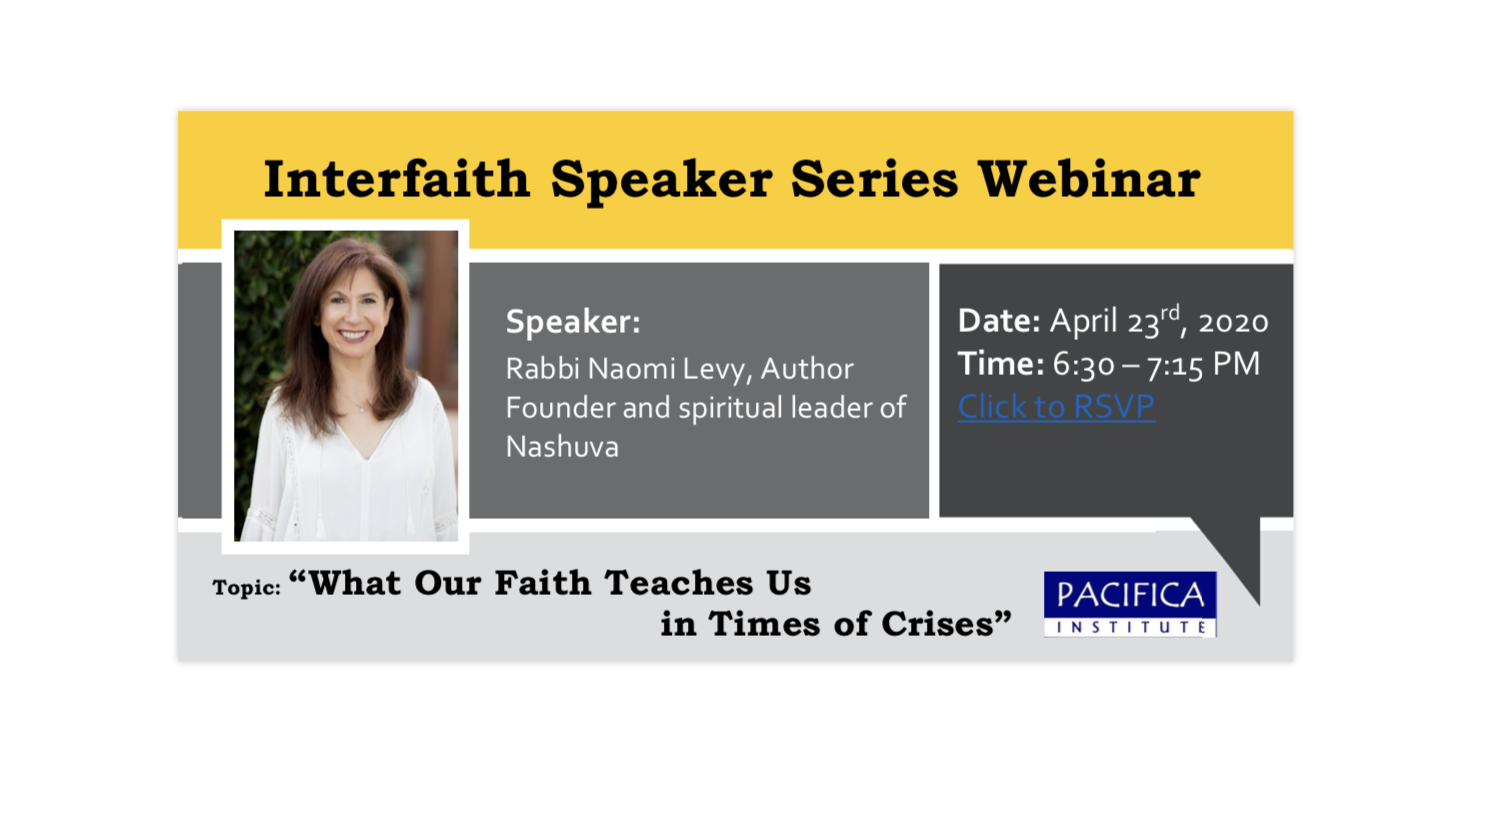 Interfaith Webinar: What Our Faith Teaches us in Times of Crises, Speaker: Rabbi Naomi Levy- Founder and spiritual leader of Nashuva and Author